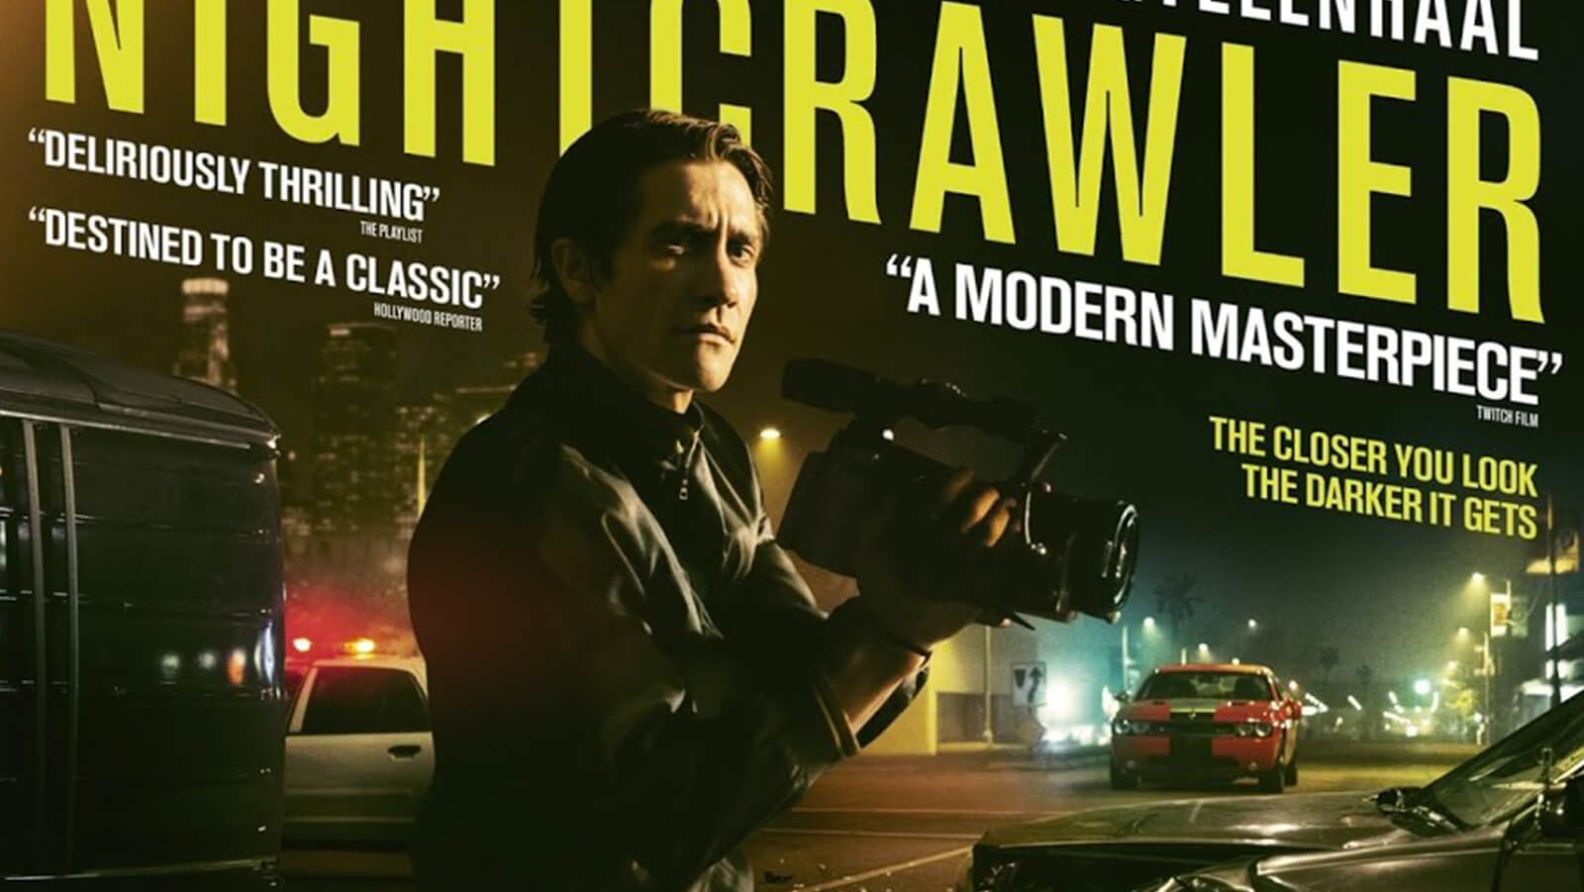 Movie Lessons from Nightcrawler (2014)